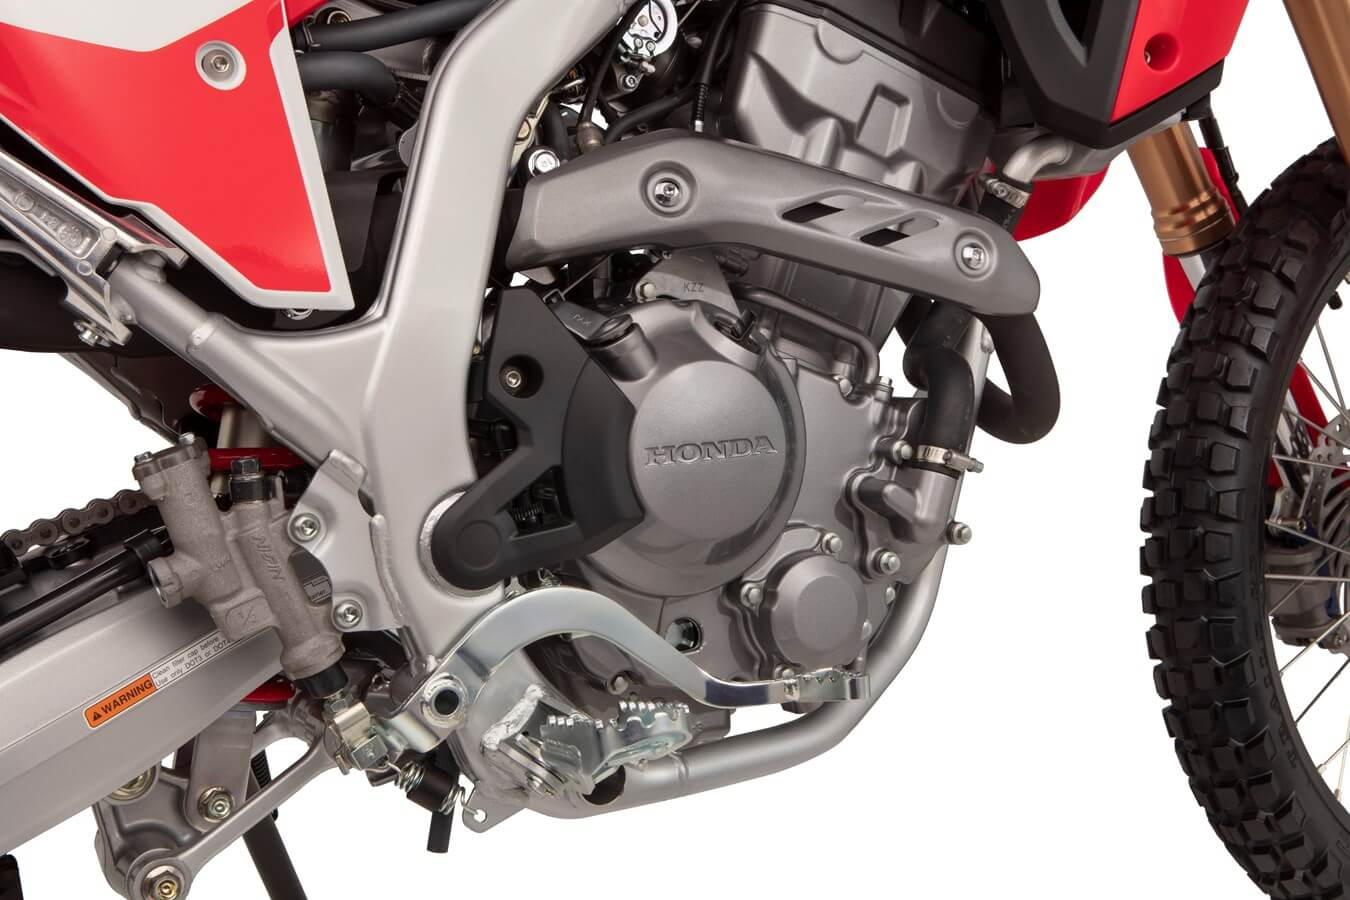 2021 Honda CRF300L Engine Review / Specs + NEW Changes Explained!